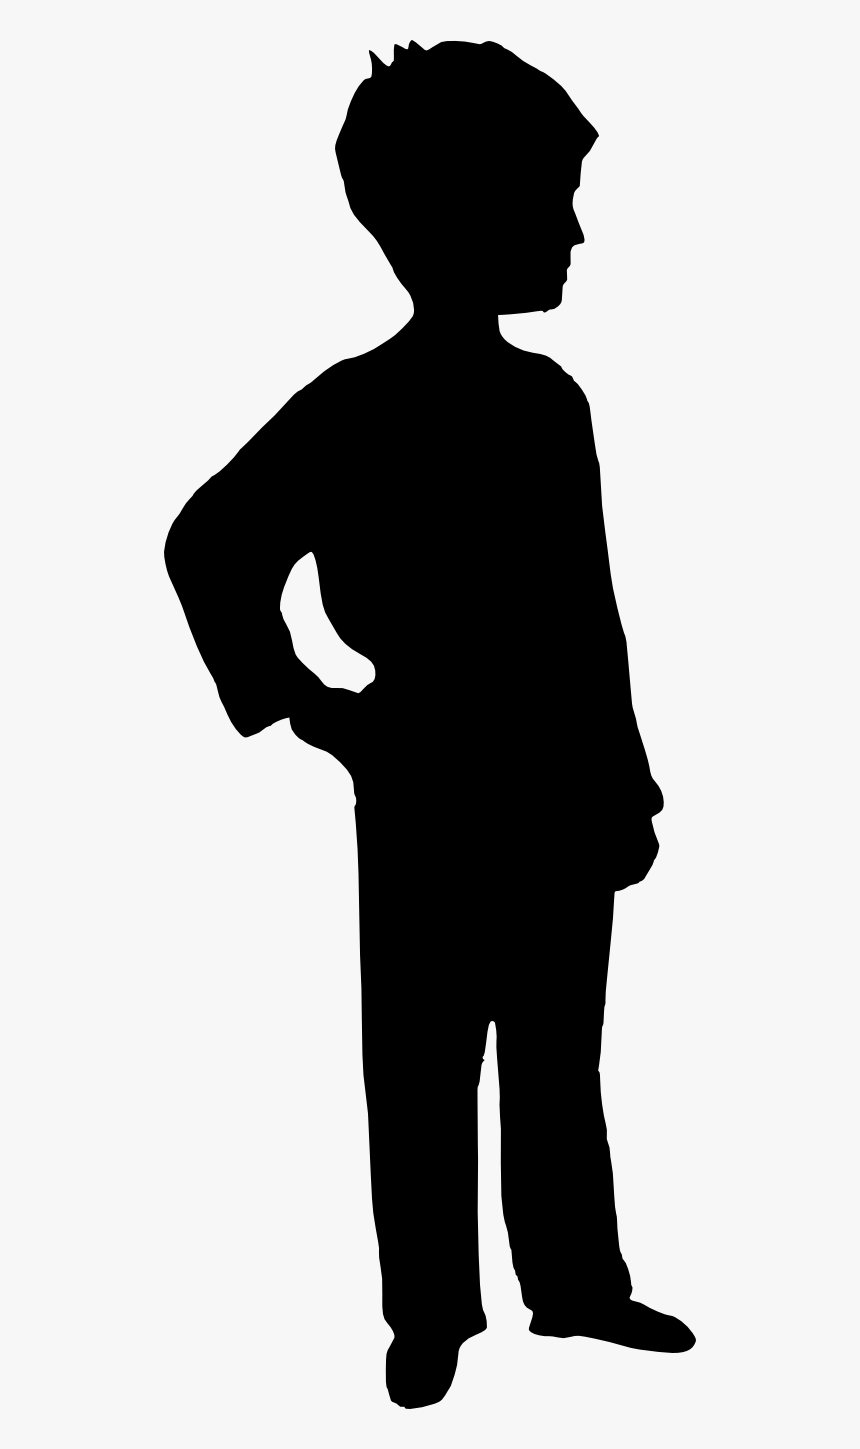 Boy Silhouette Transparent Background Hd Png Download Transparent Png Image Pngitem Download all photos and use them even for commercial projects. boy silhouette transparent background